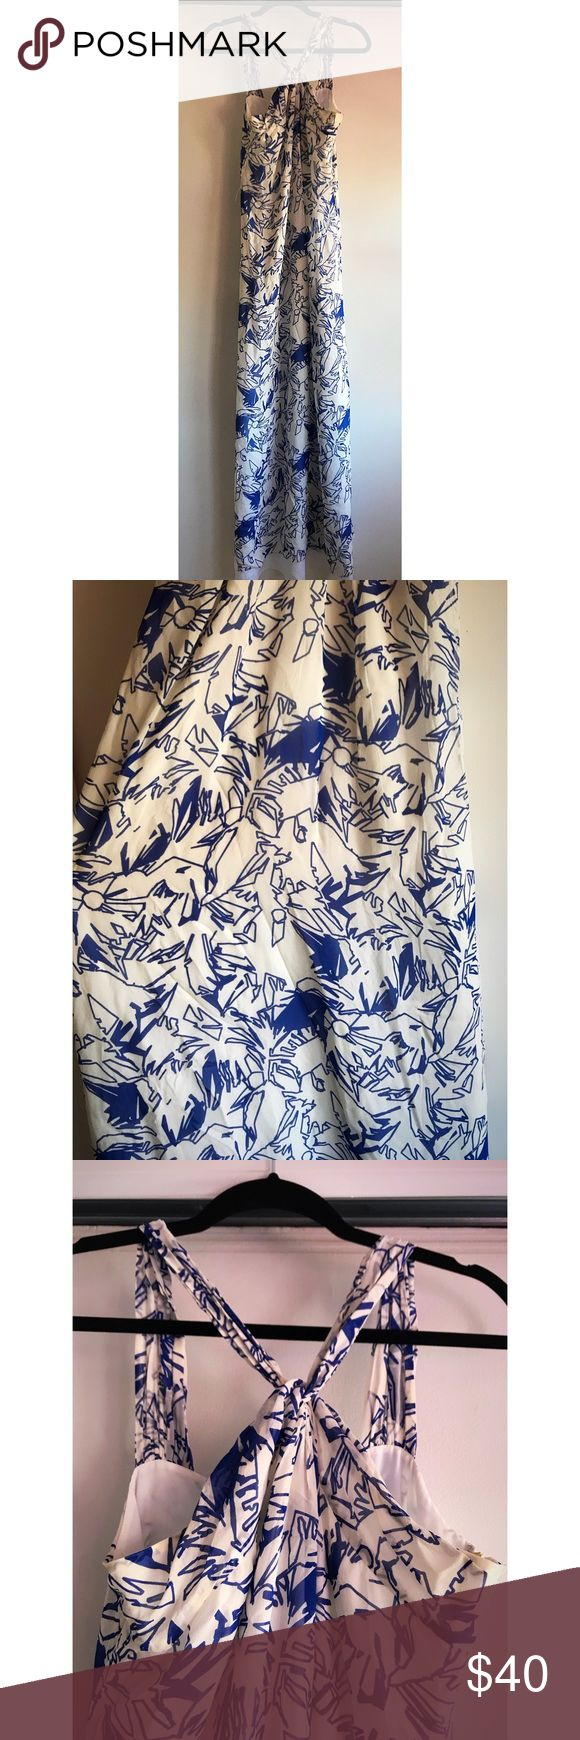 Armani Exchange dress New condition only worn once beautiful blue and white summer dress i bought it on sale for 70$ Armani Exchange Dresses Maxi